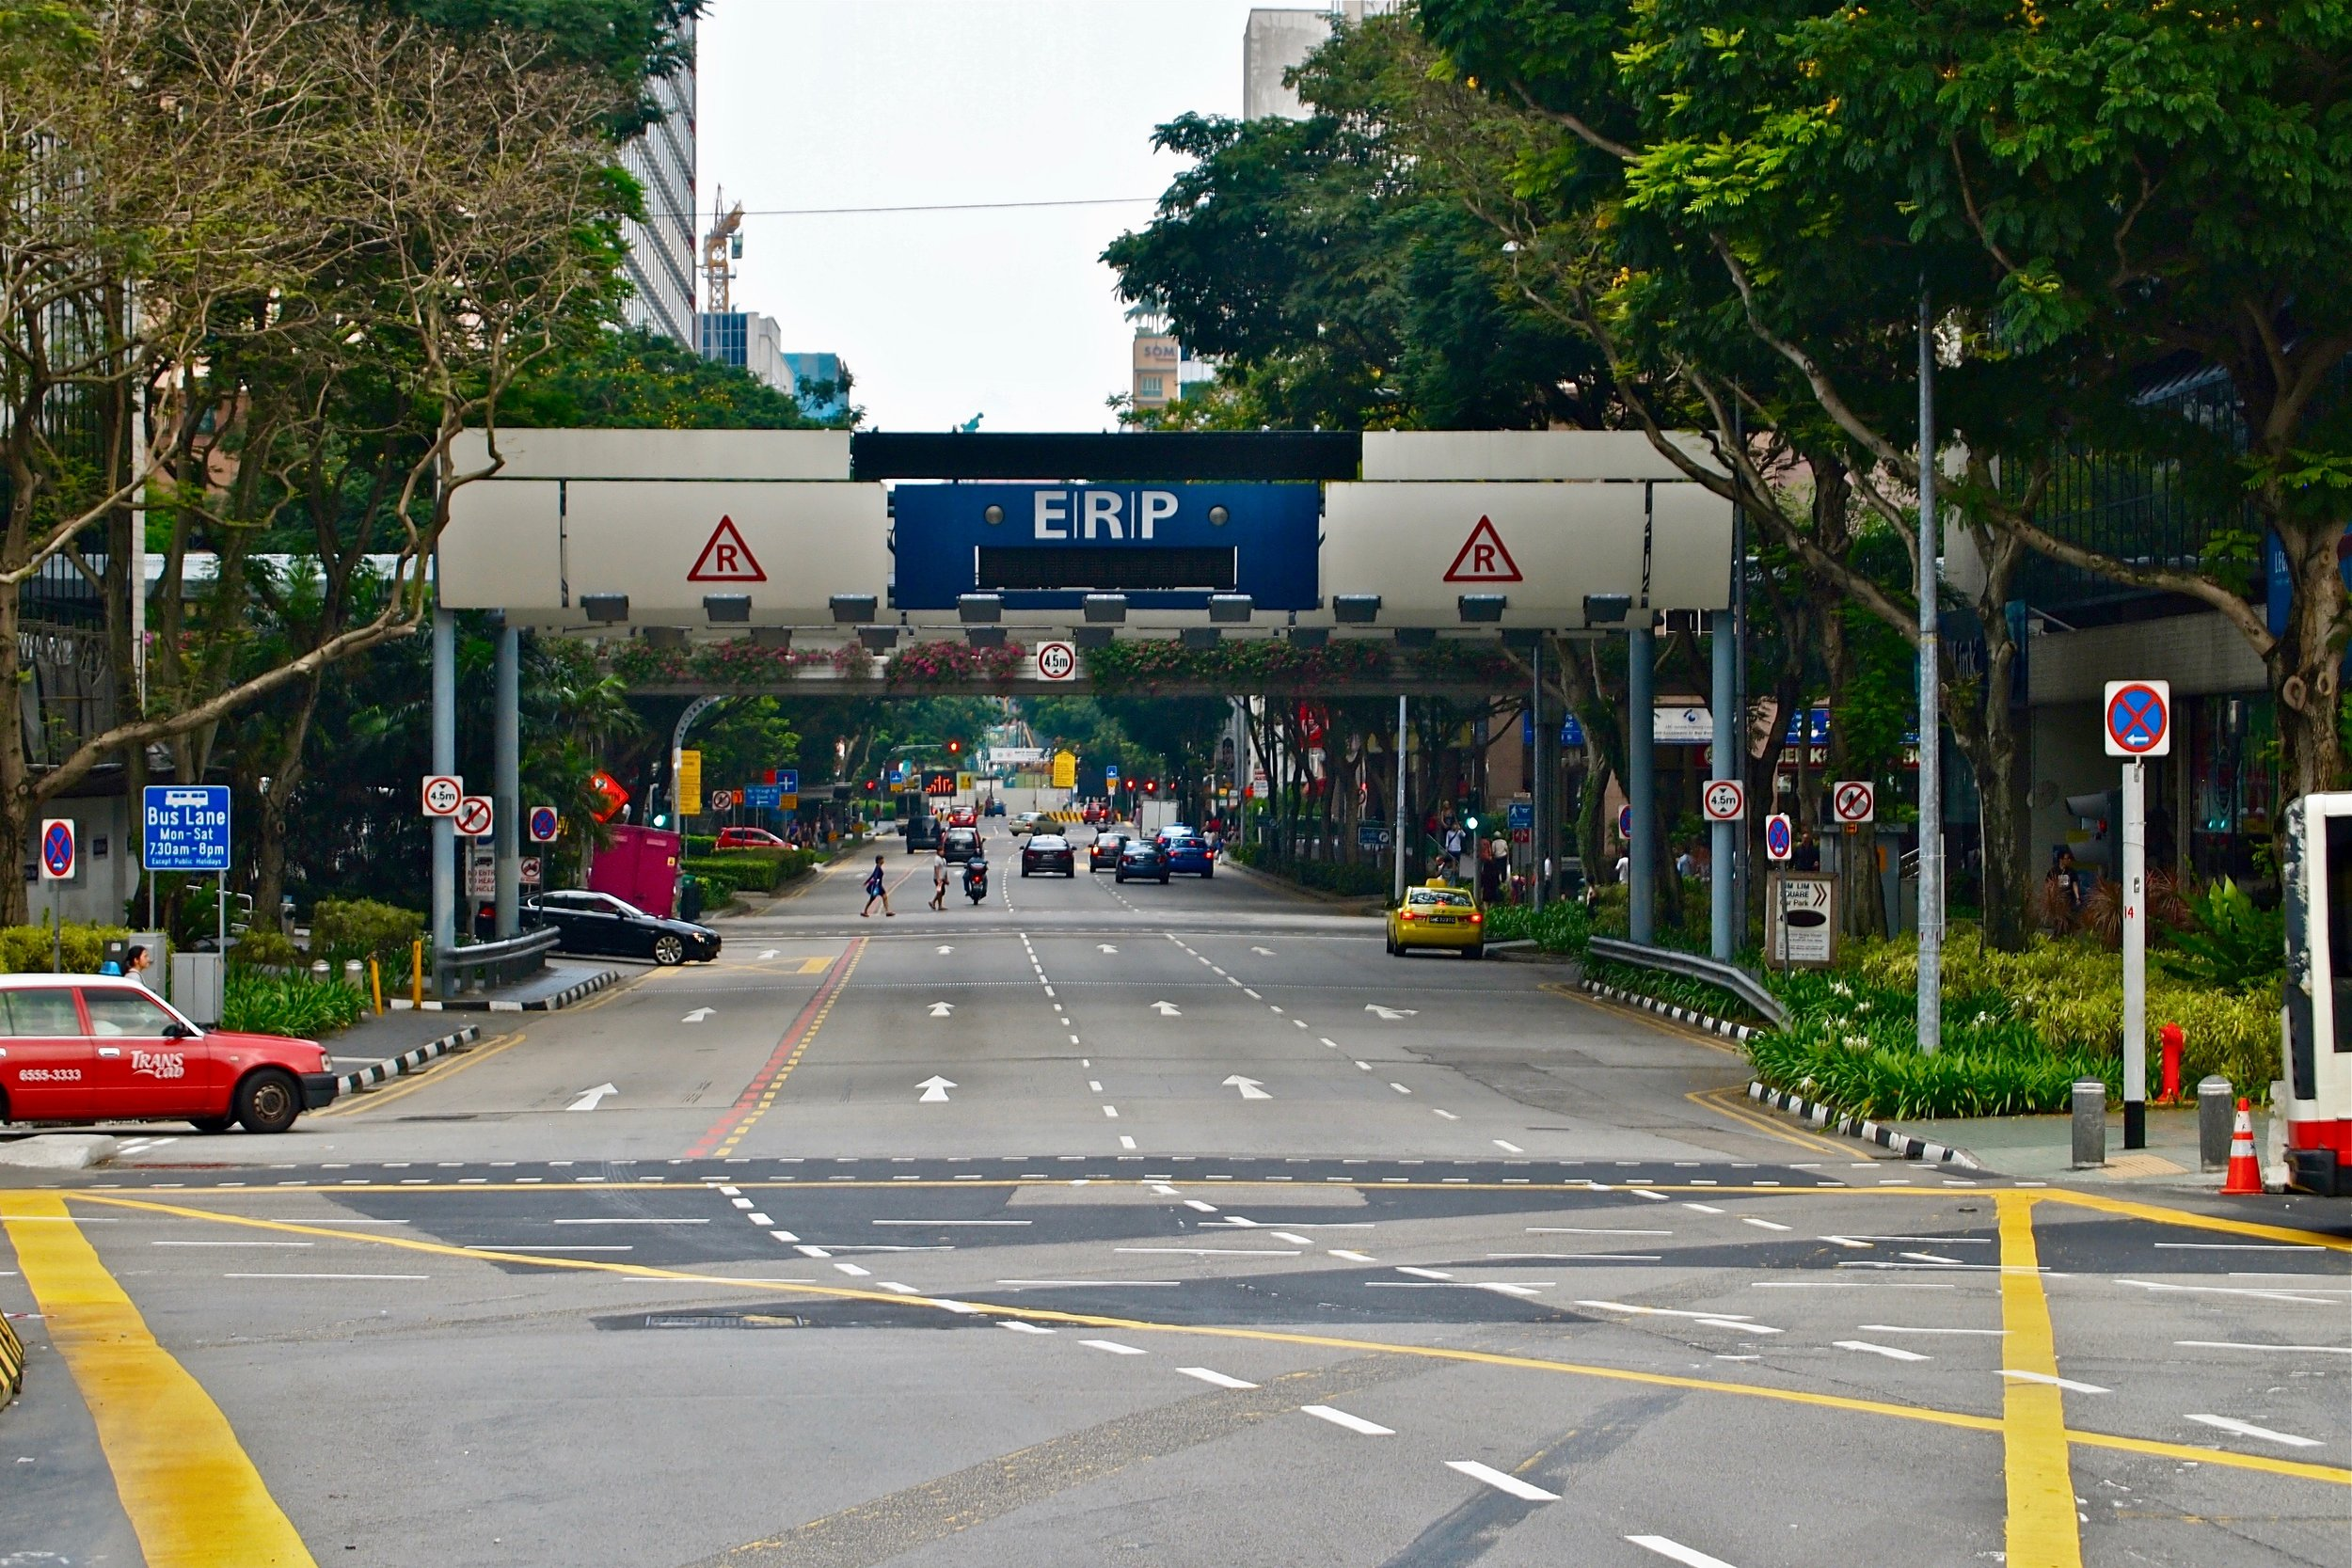 An ERP gantry in downtown Singapore, automatically charging toll from passing vehicles. (C) Remko Tanis